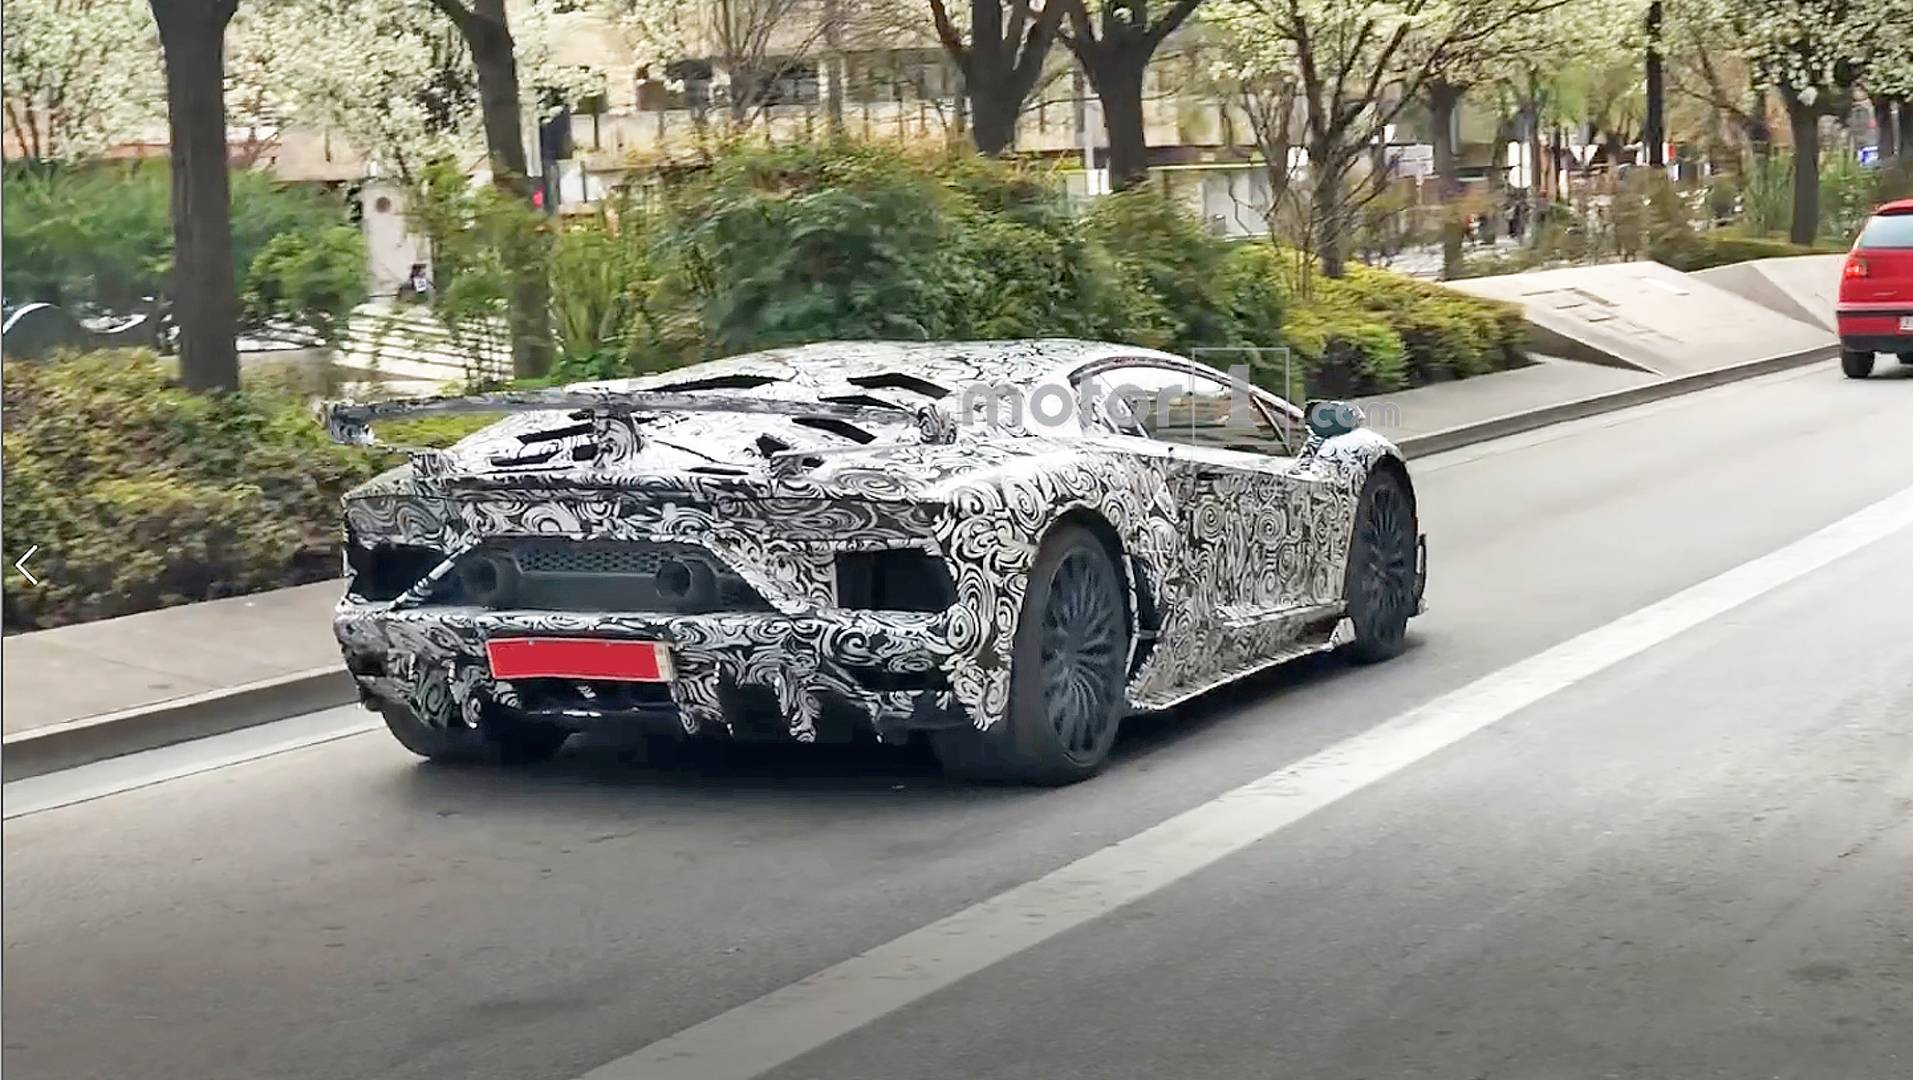 Lamborghini Aventador Svj Spied With Big Exhaust Bigger Wing